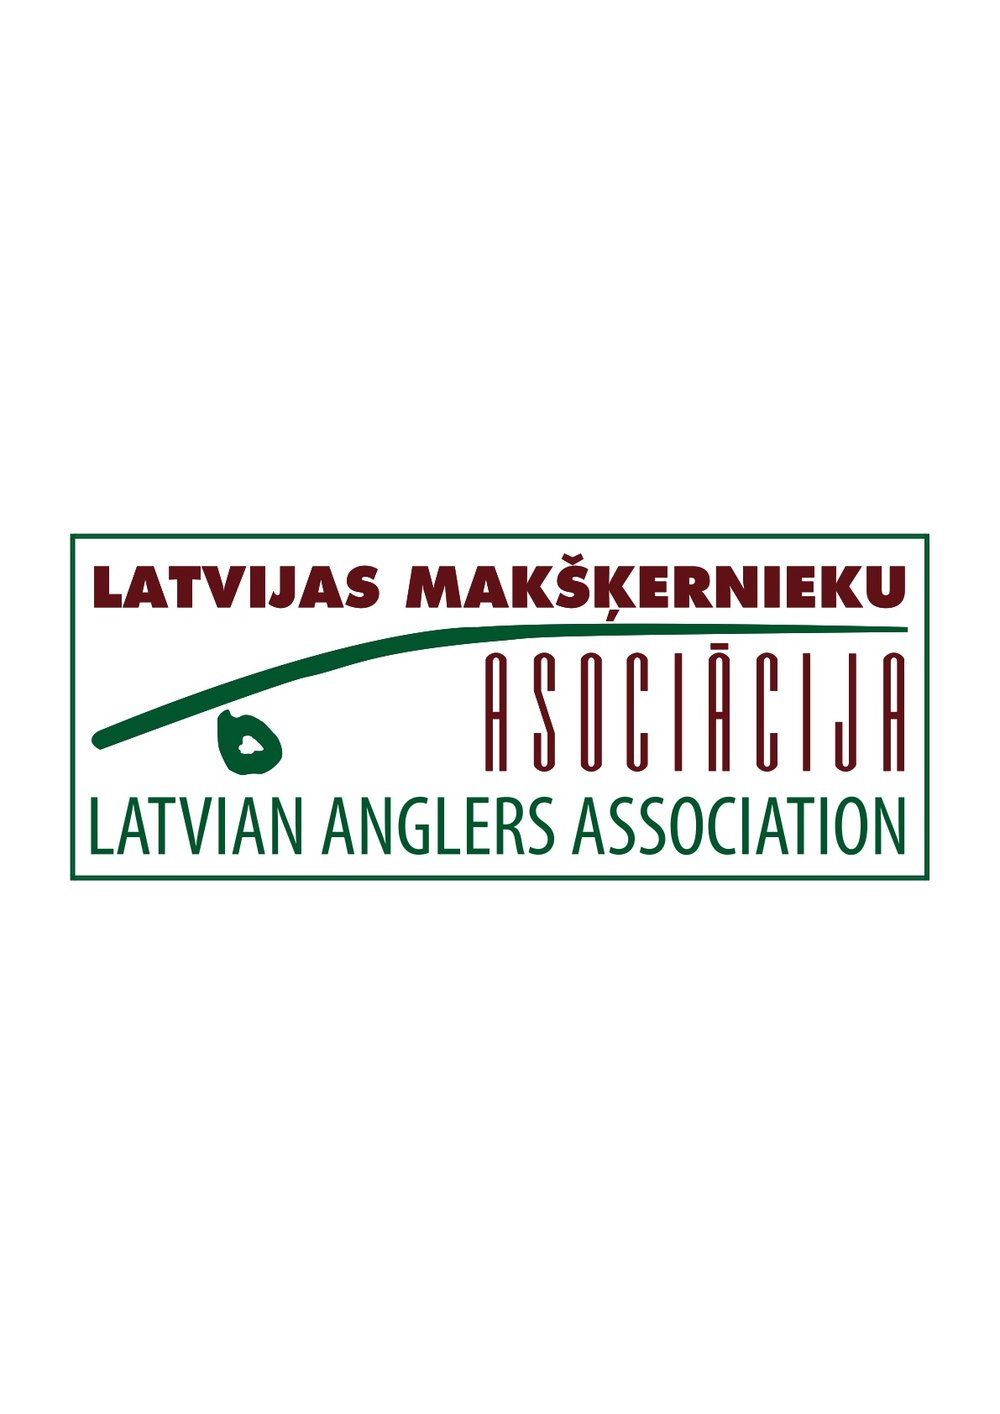 The Latvian Anglers Association